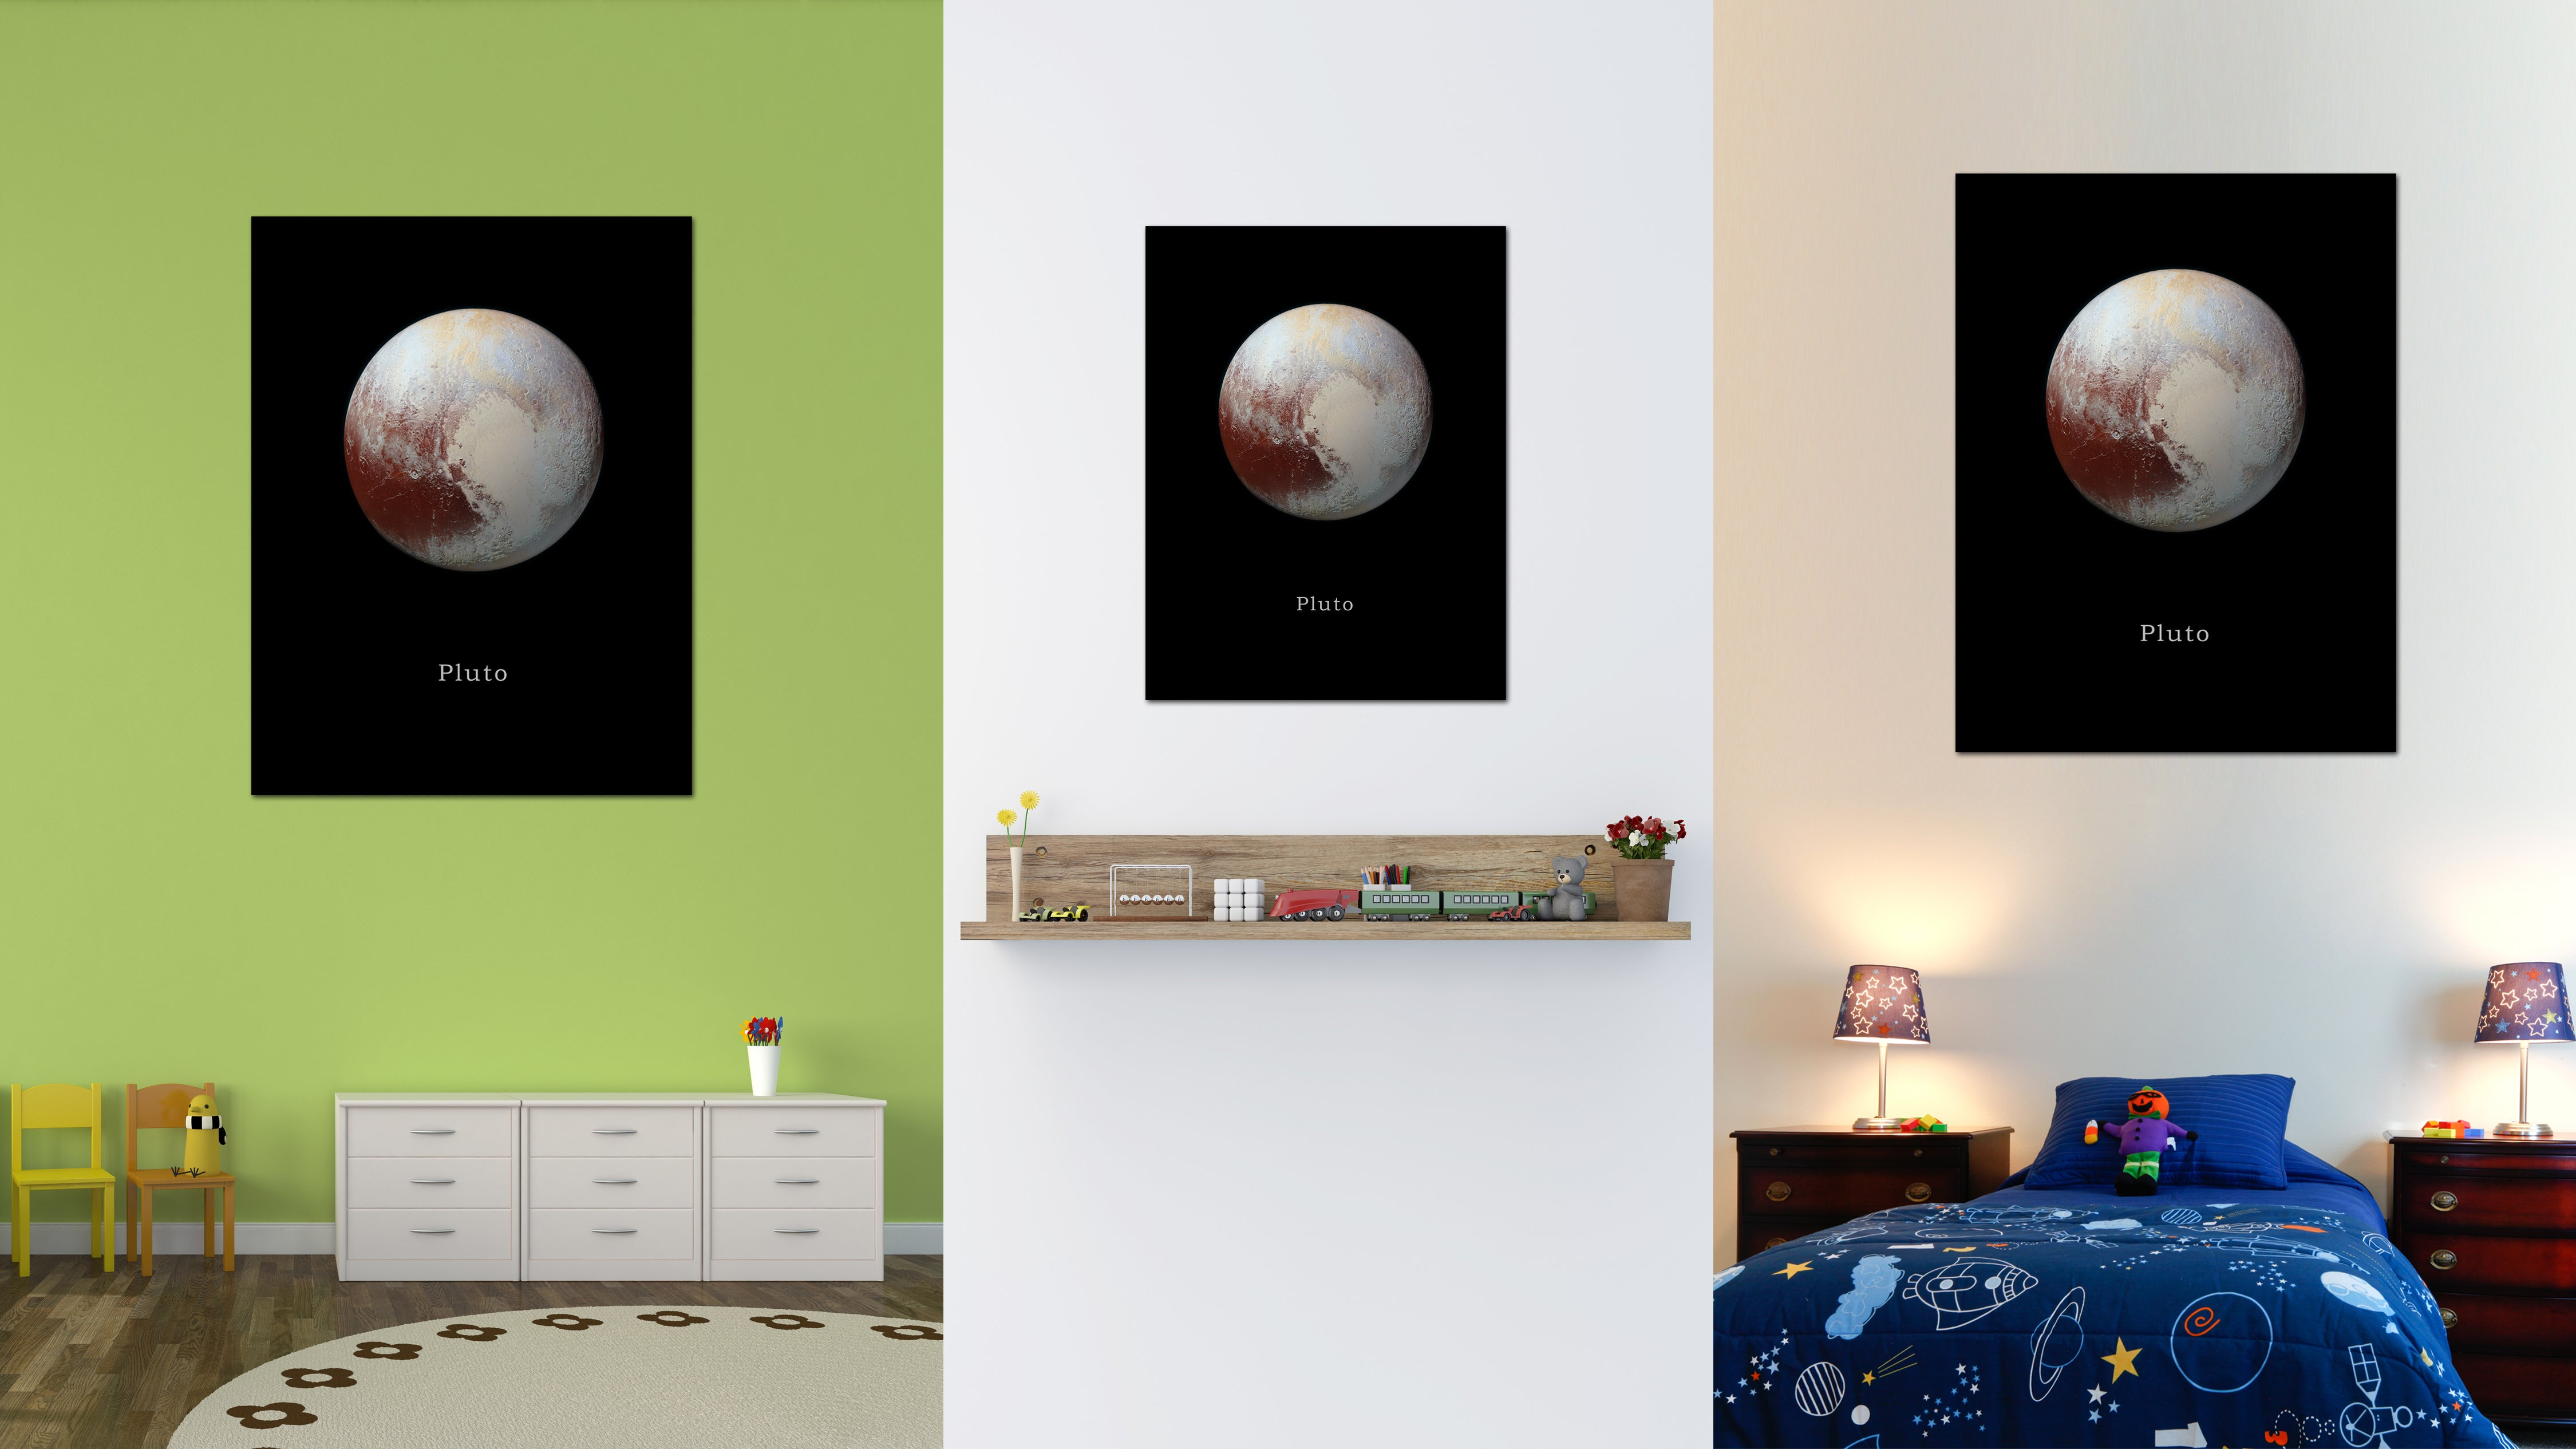 Pluto Print on Canvas Planets of Solar System Black Custom Framed Art Home Decor Wall Office Decoration